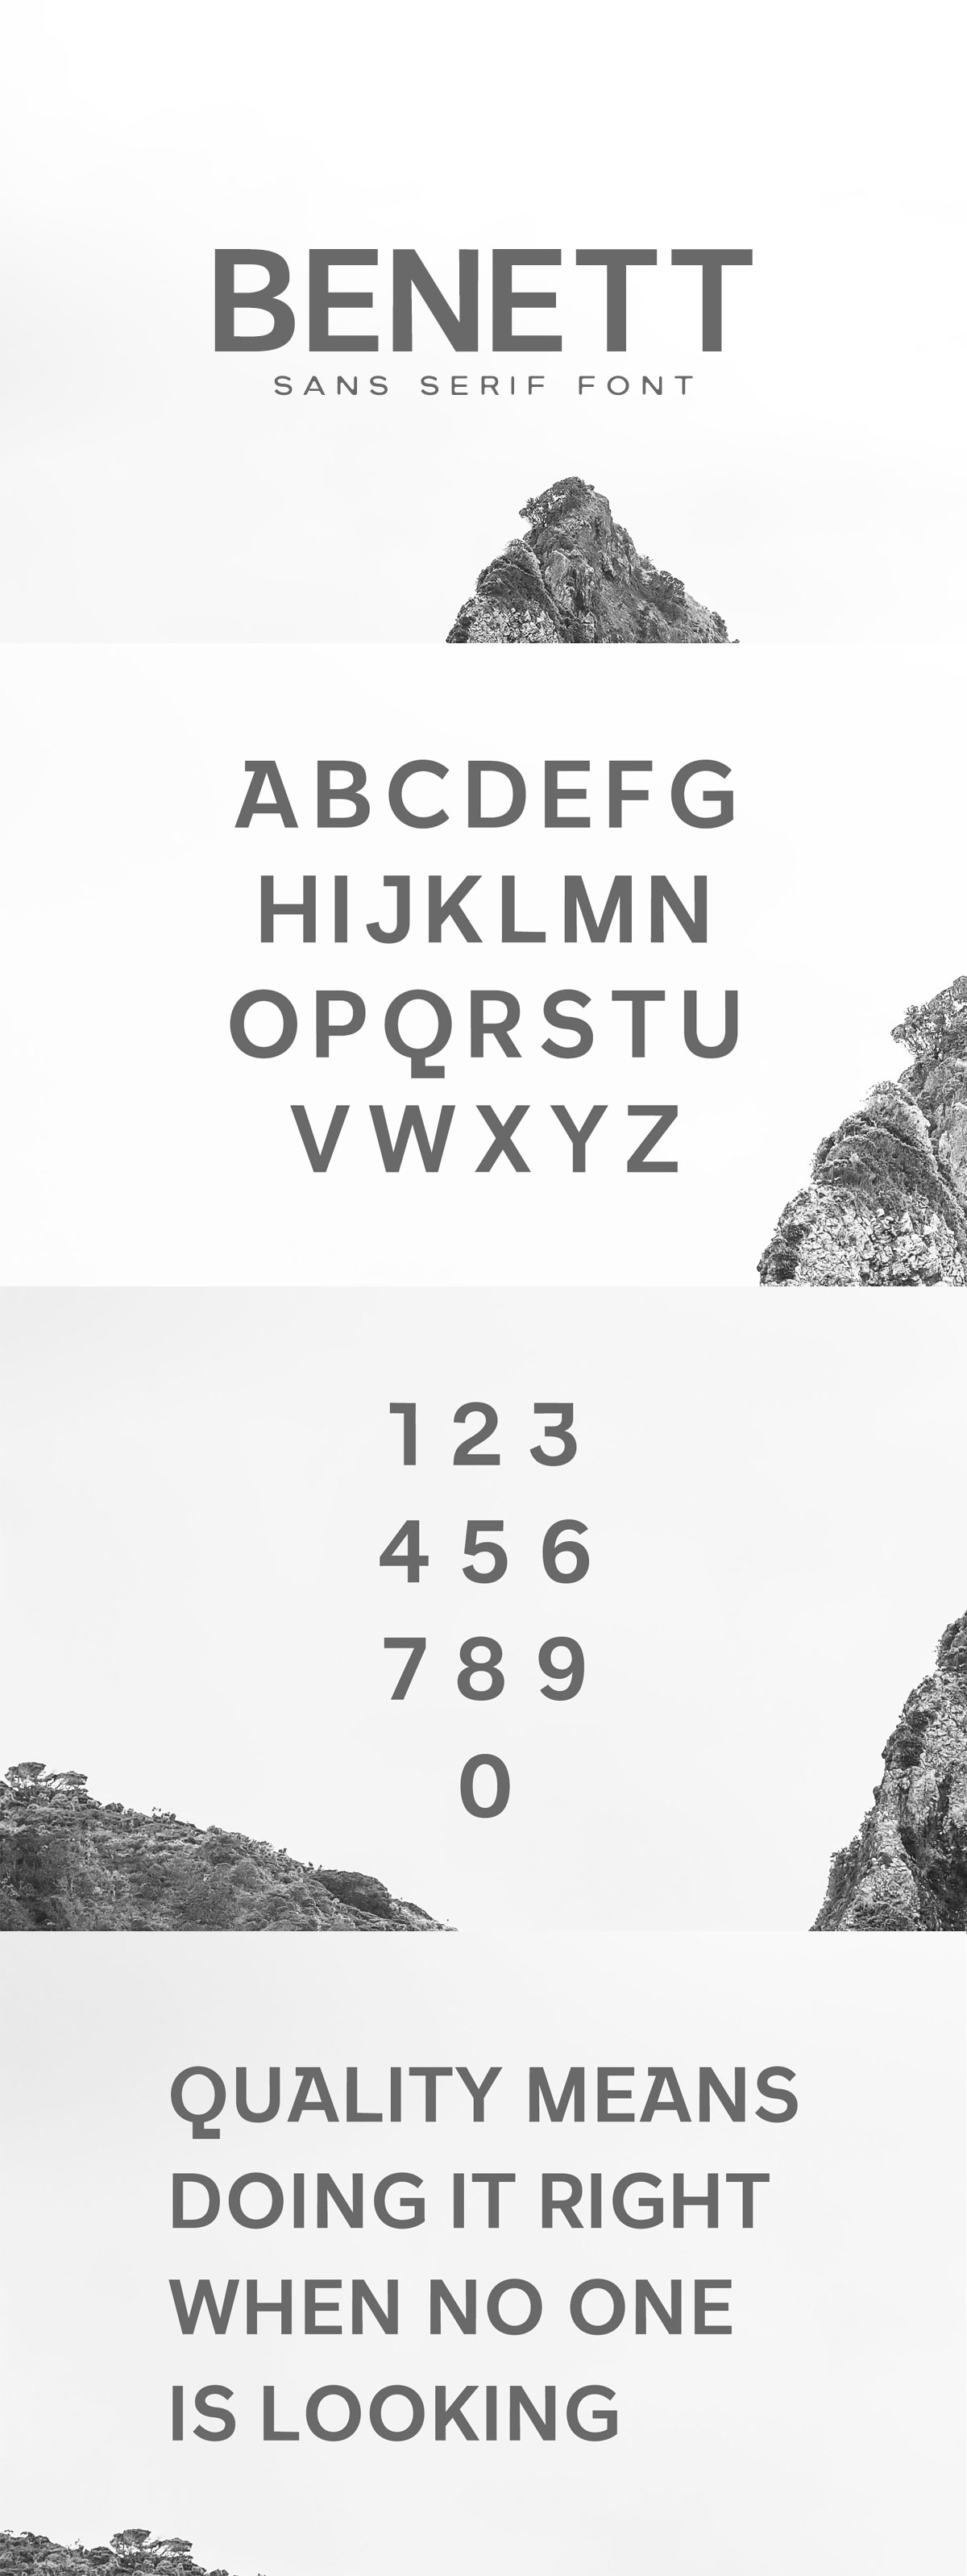 Free Benett#Sans #Serif #Fontis a clean bold sans font. It contains uppercase and numbers only. It will be perfect for packaging, presentations, logo, headlines, etc.